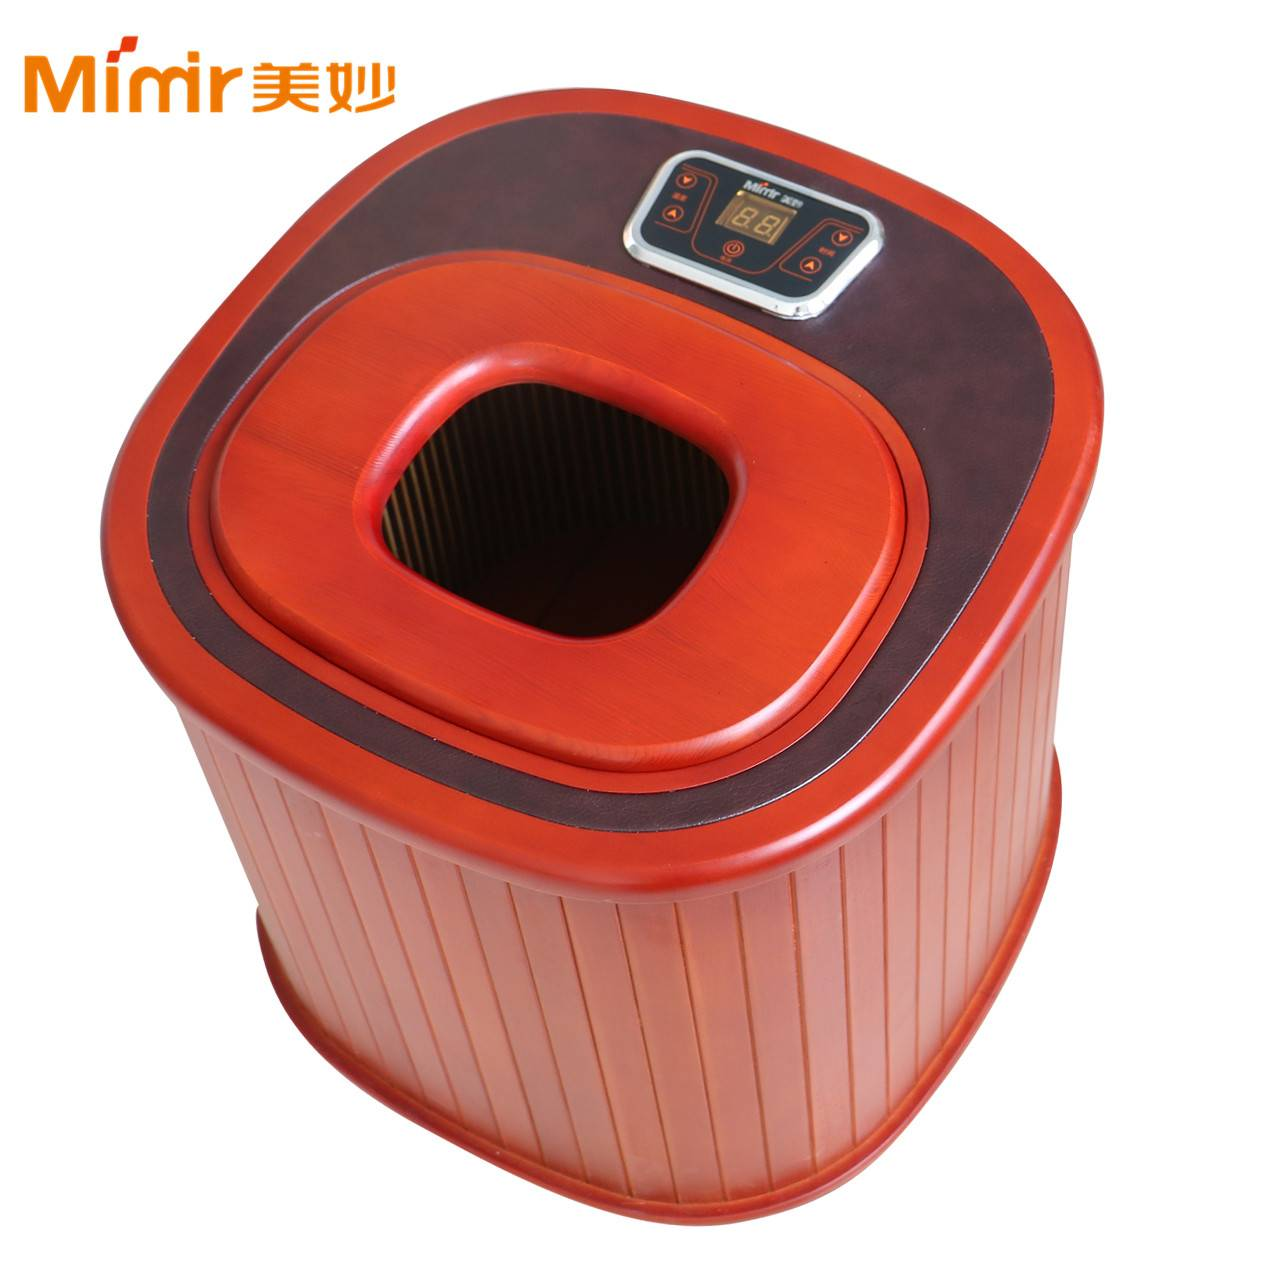 luxuries Far-infrared Dry Foot Bath Health Spa foot sauna therapy